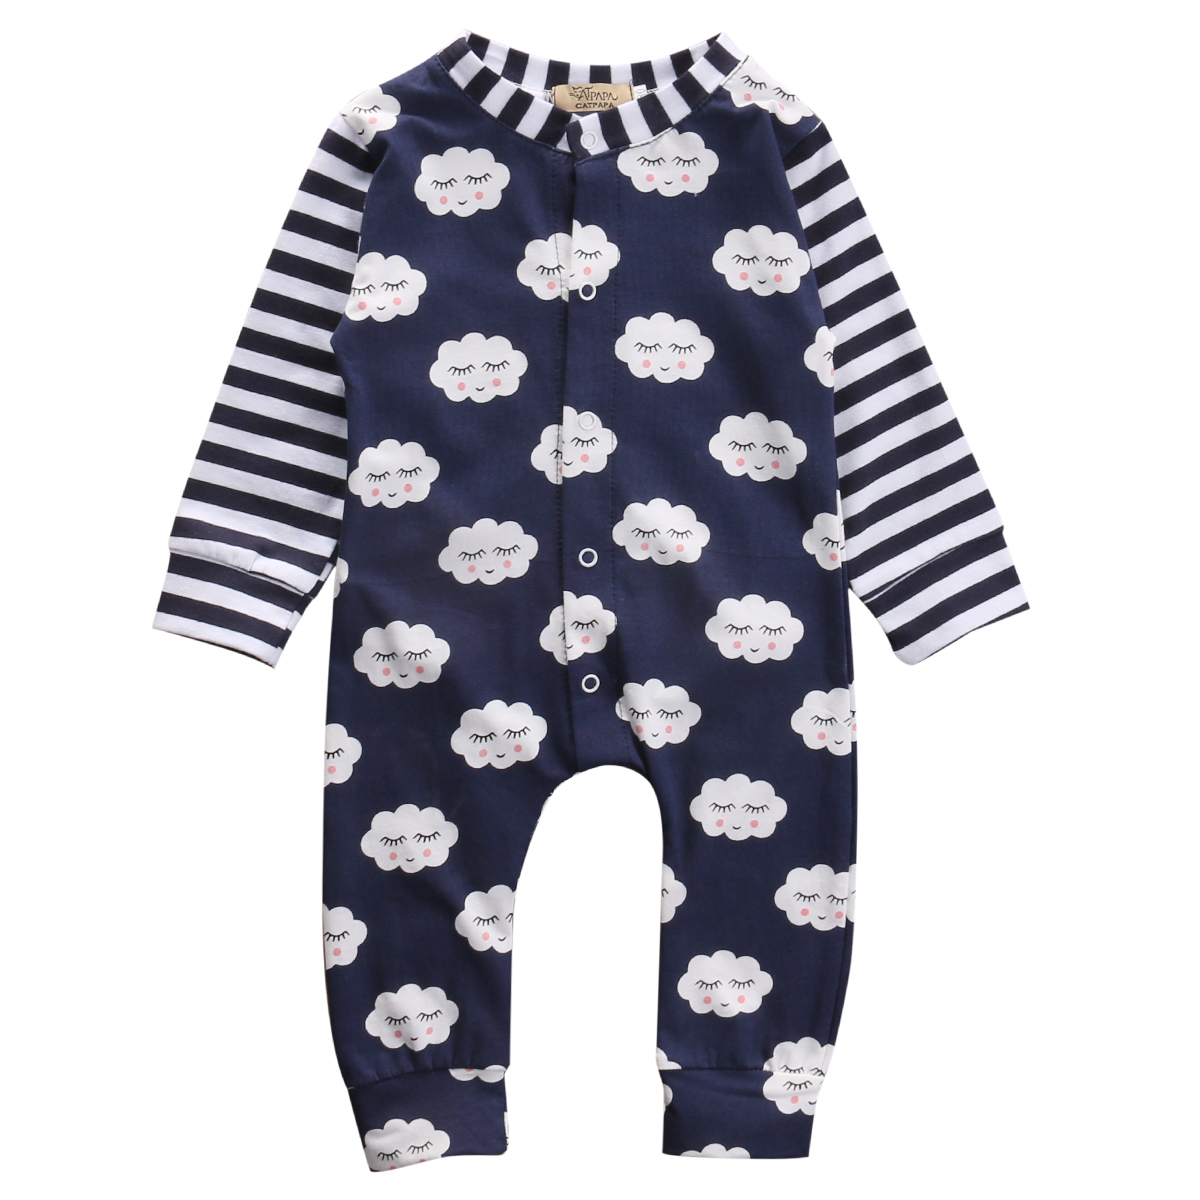 Baby Romper 2016 Autumn Winter Fleece Long Sleeve Baby Boy Girl Clothes One Piece Jumpsuit Underwear Baby Clothing mother nest 3sets lot wholesale autumn toddle girl long sleeve baby clothing one piece boys baby pajamas infant clothes rompers